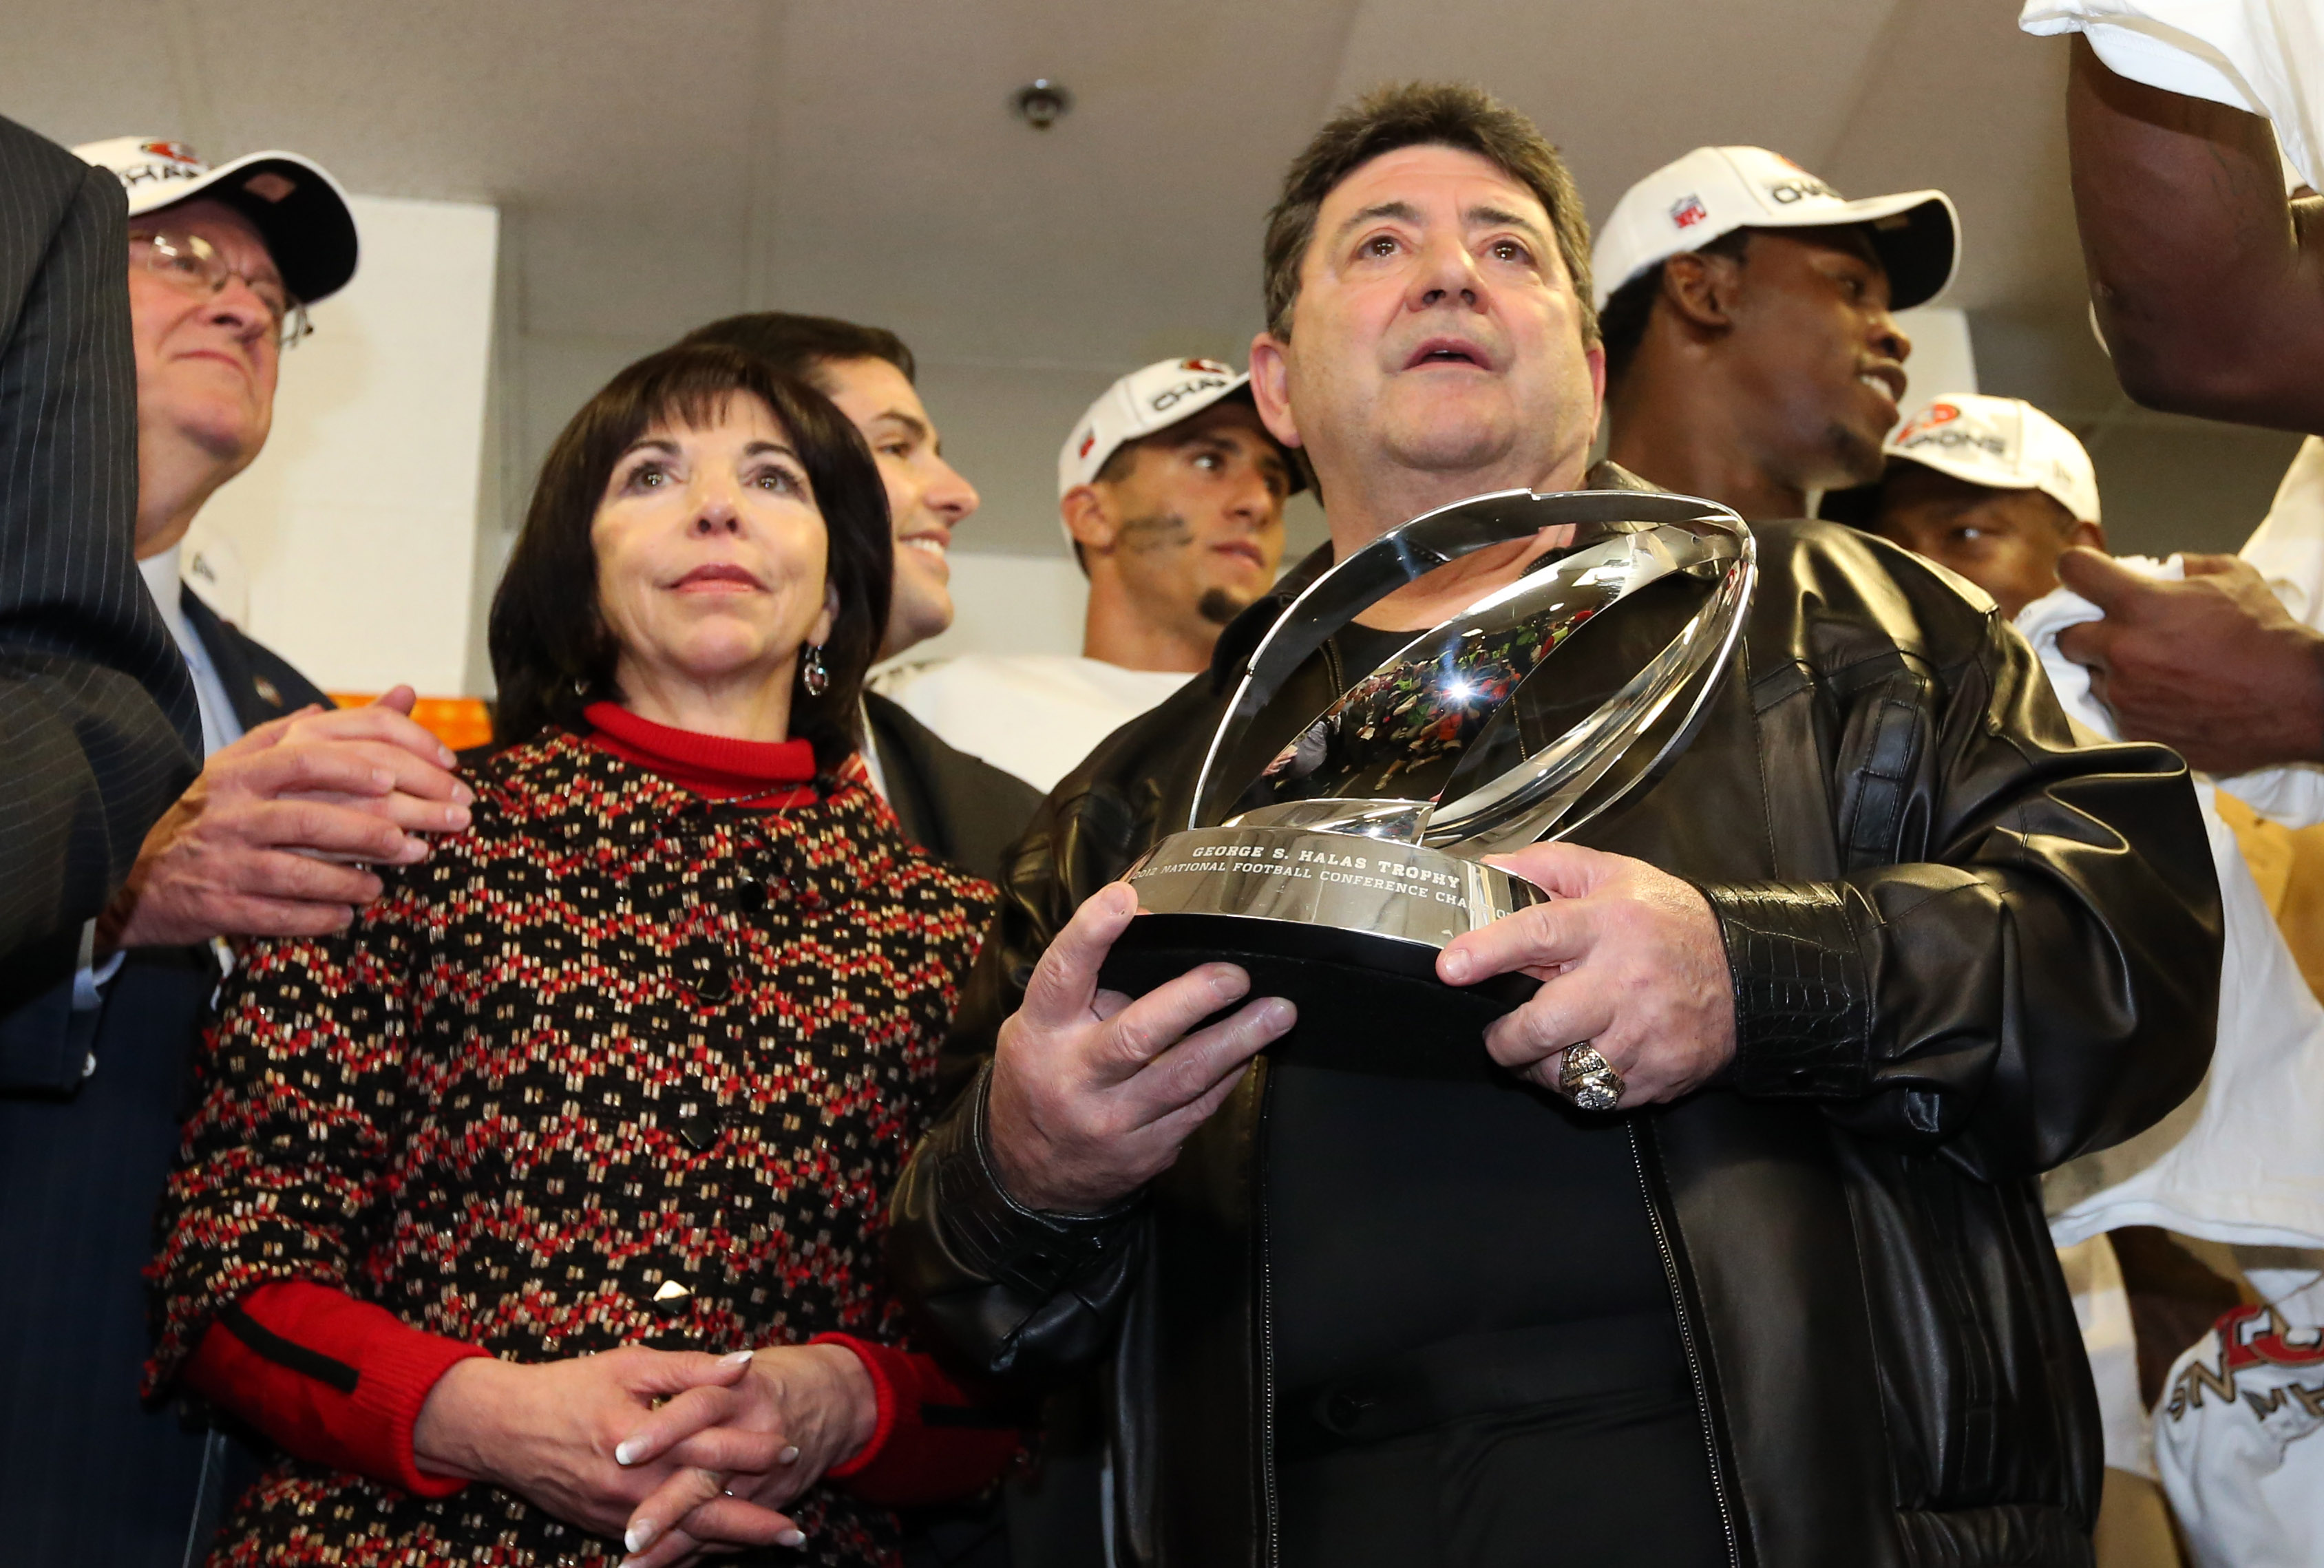 Eddie DeBartolo Jr. enjoys victory with his sister, Denise DeBartolo York, last month. (USA Today)